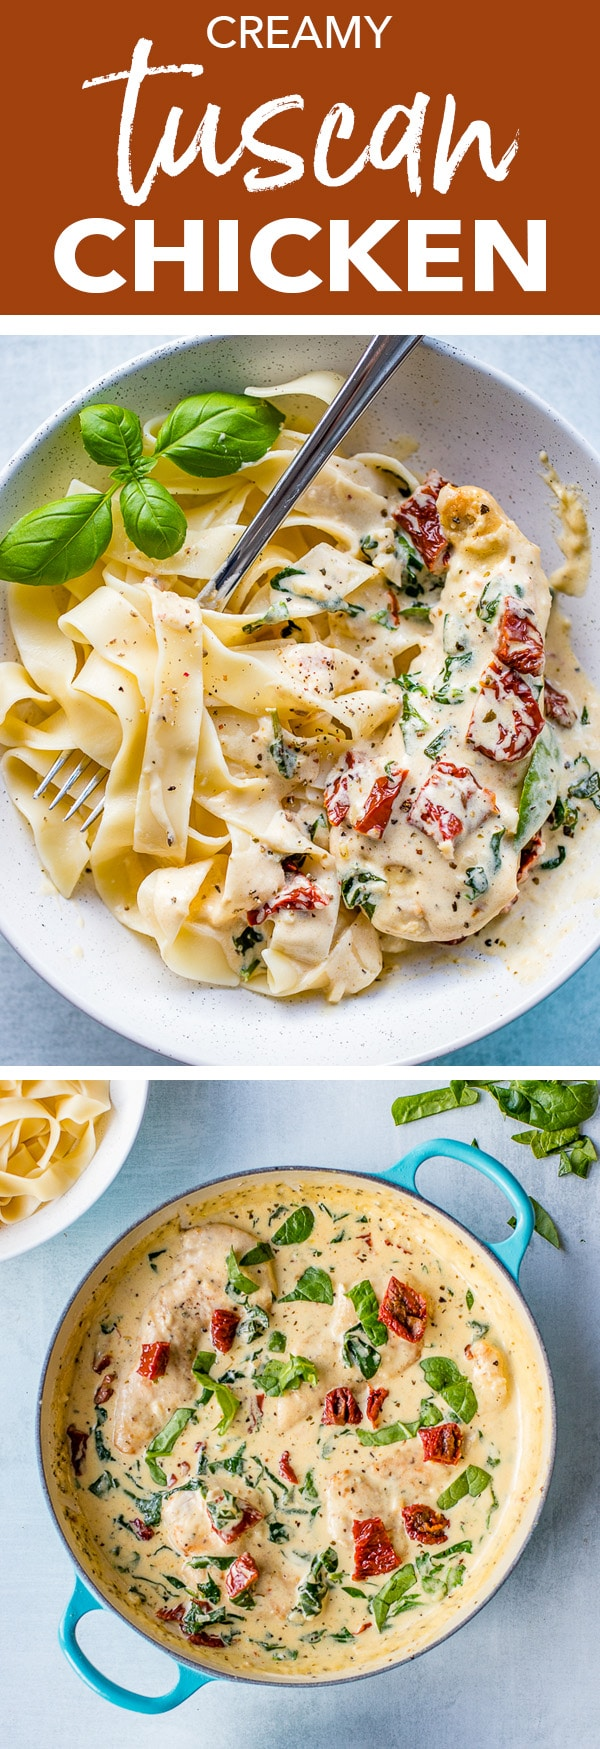 A restaurant-quality meal on the table in less than 30 minutes - creamy Tuscan chicken with fresh garlic, spinach, and sun-dried tomatoes is as easy as it is delicious, and as perfect for busy weeknights as it is for entertaining. #dinnerpartyrecipes #tuscanchicken #chickenrecipes #weeknightmeals